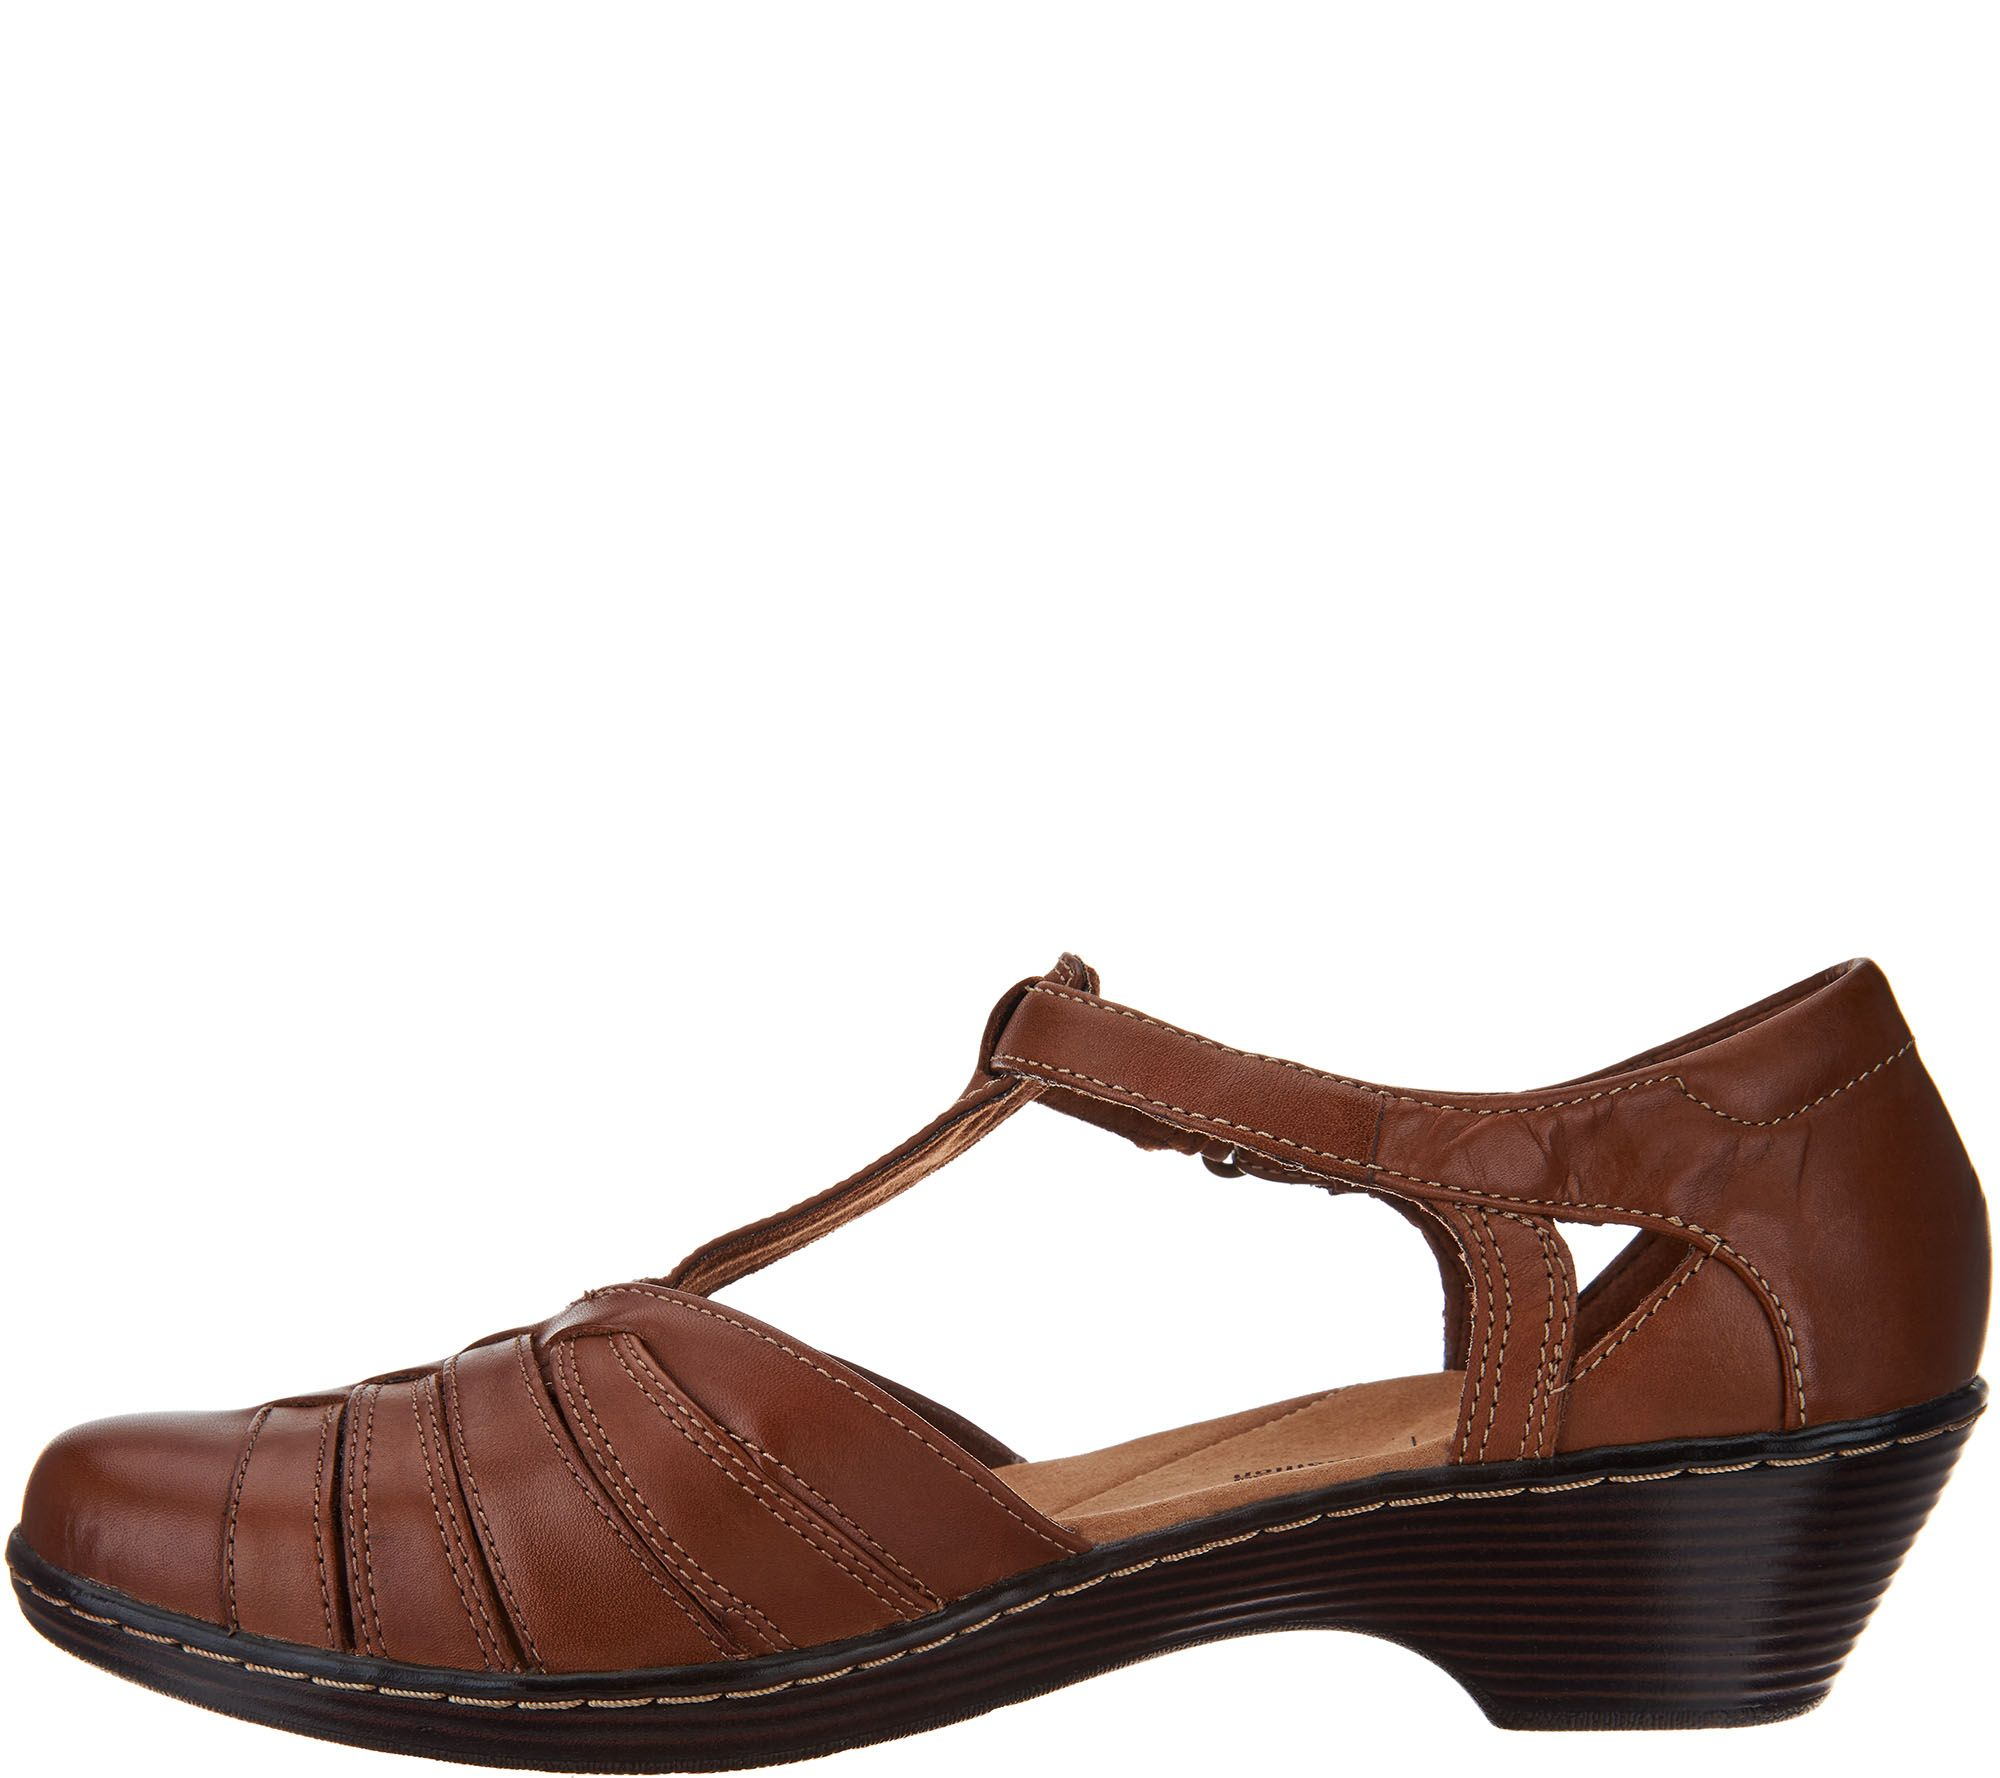 8a4cbc43527 Clarks Leather Adjustable Fisherman Sandals - Wendy Alto - Page 1 — QVC.com